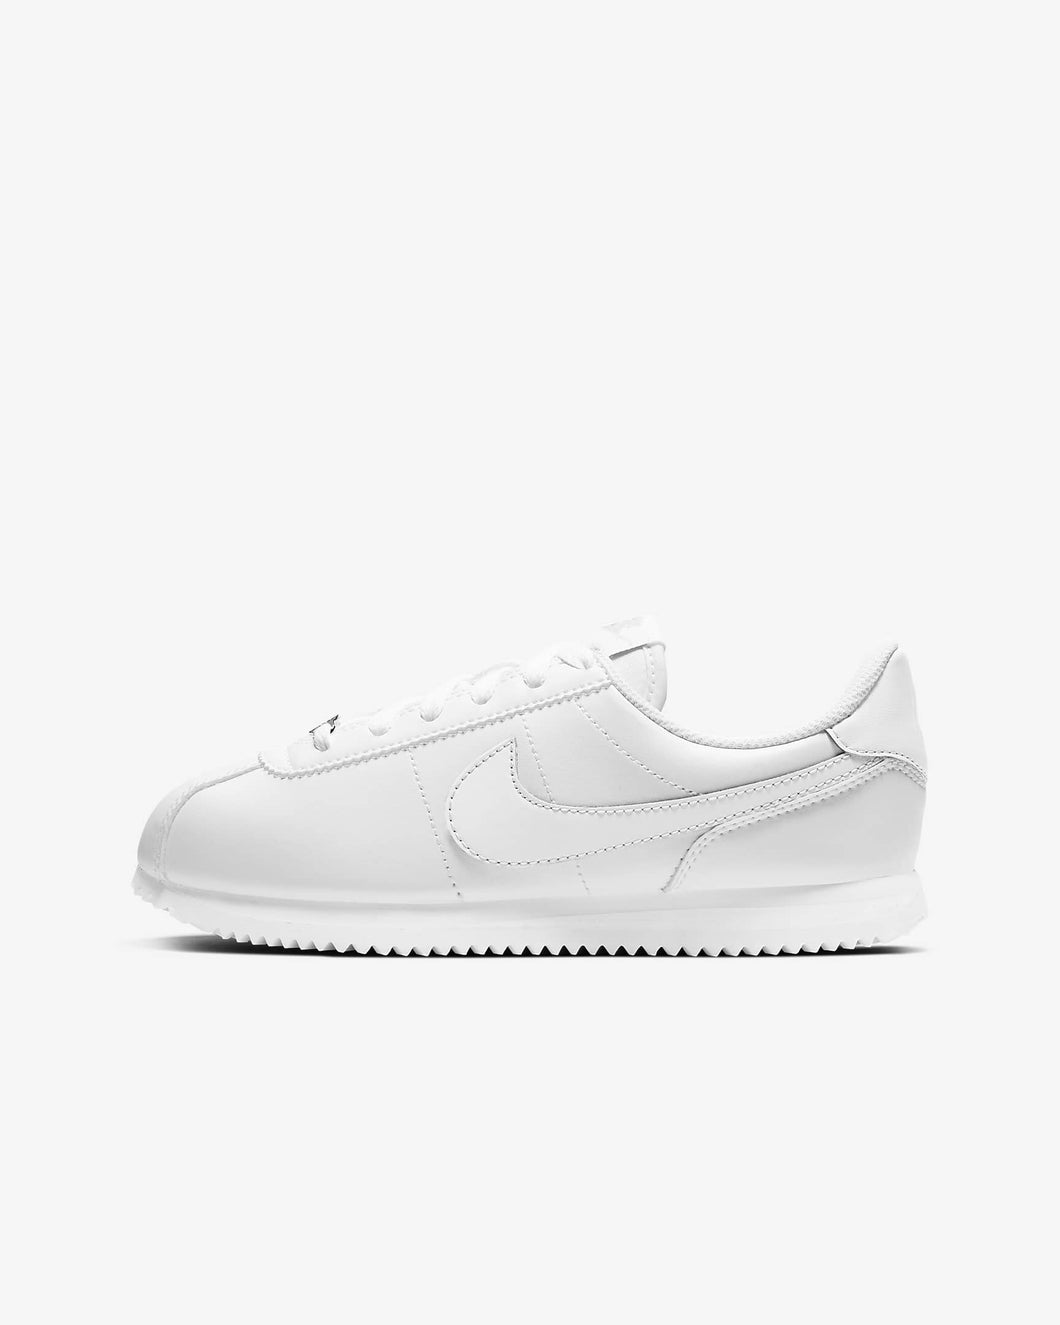 GS Nike Cortez Basic Leather